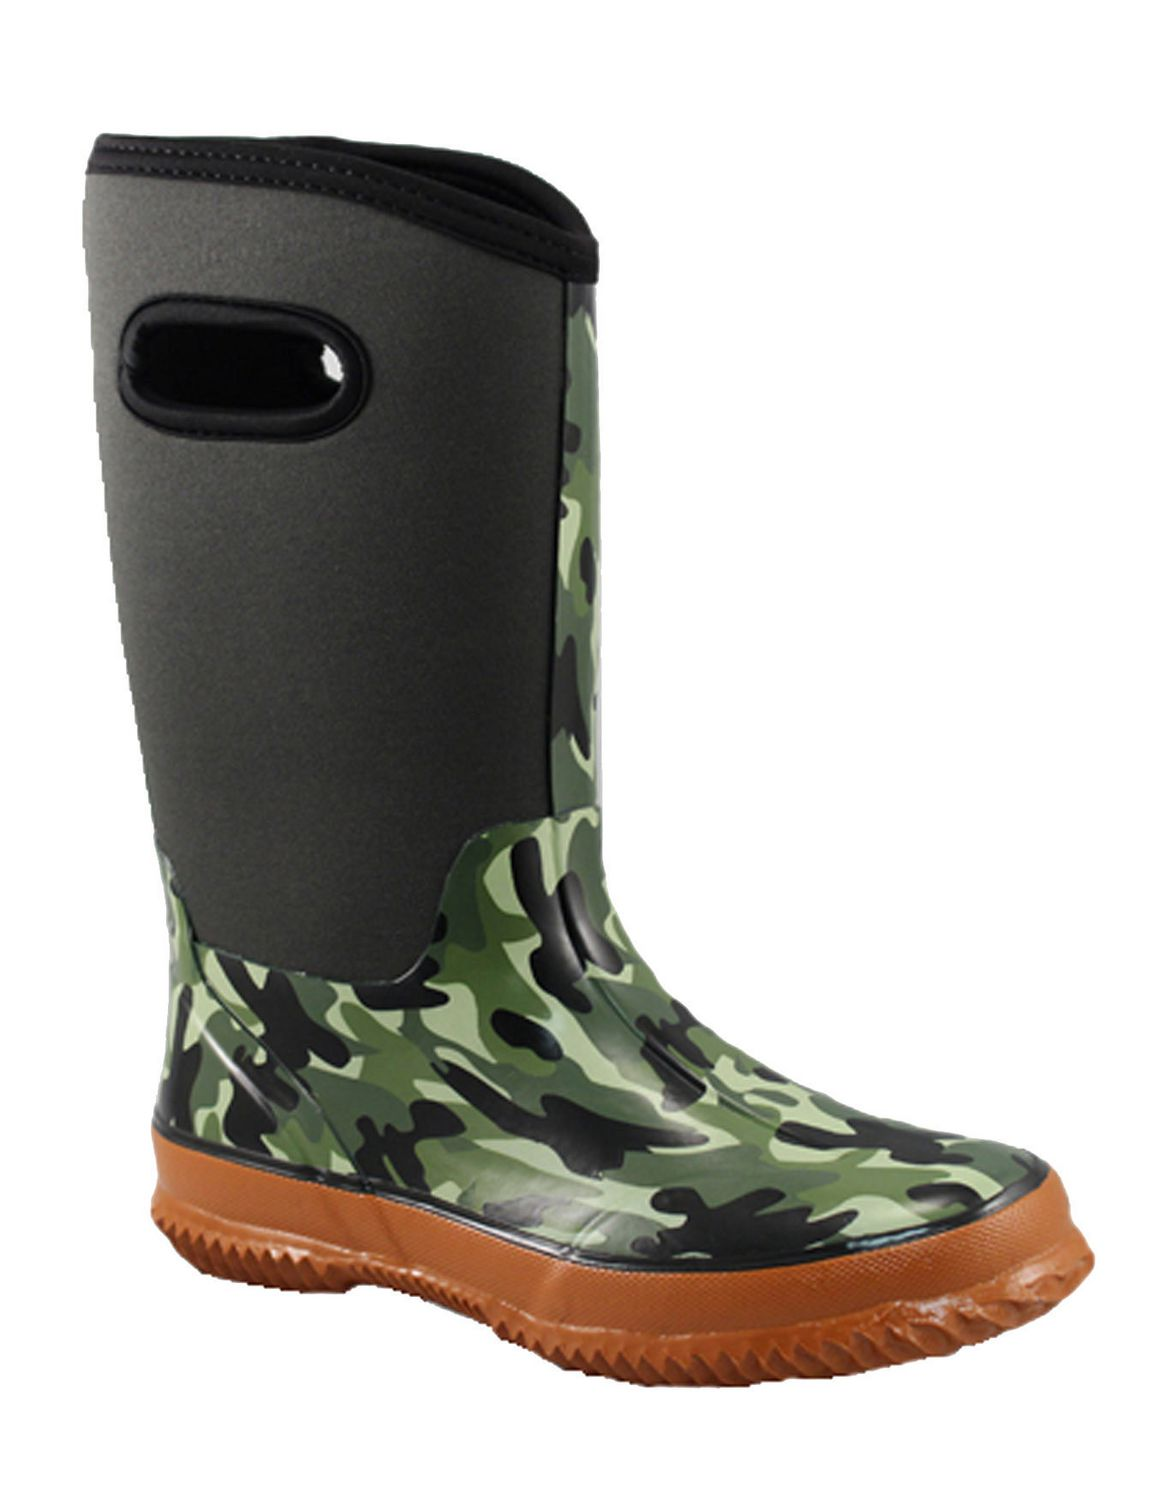 acd6bb3d112e Weather Spirits Boys  37 Neo 16 Rubber Boot - image 1 of 1 zoomed image